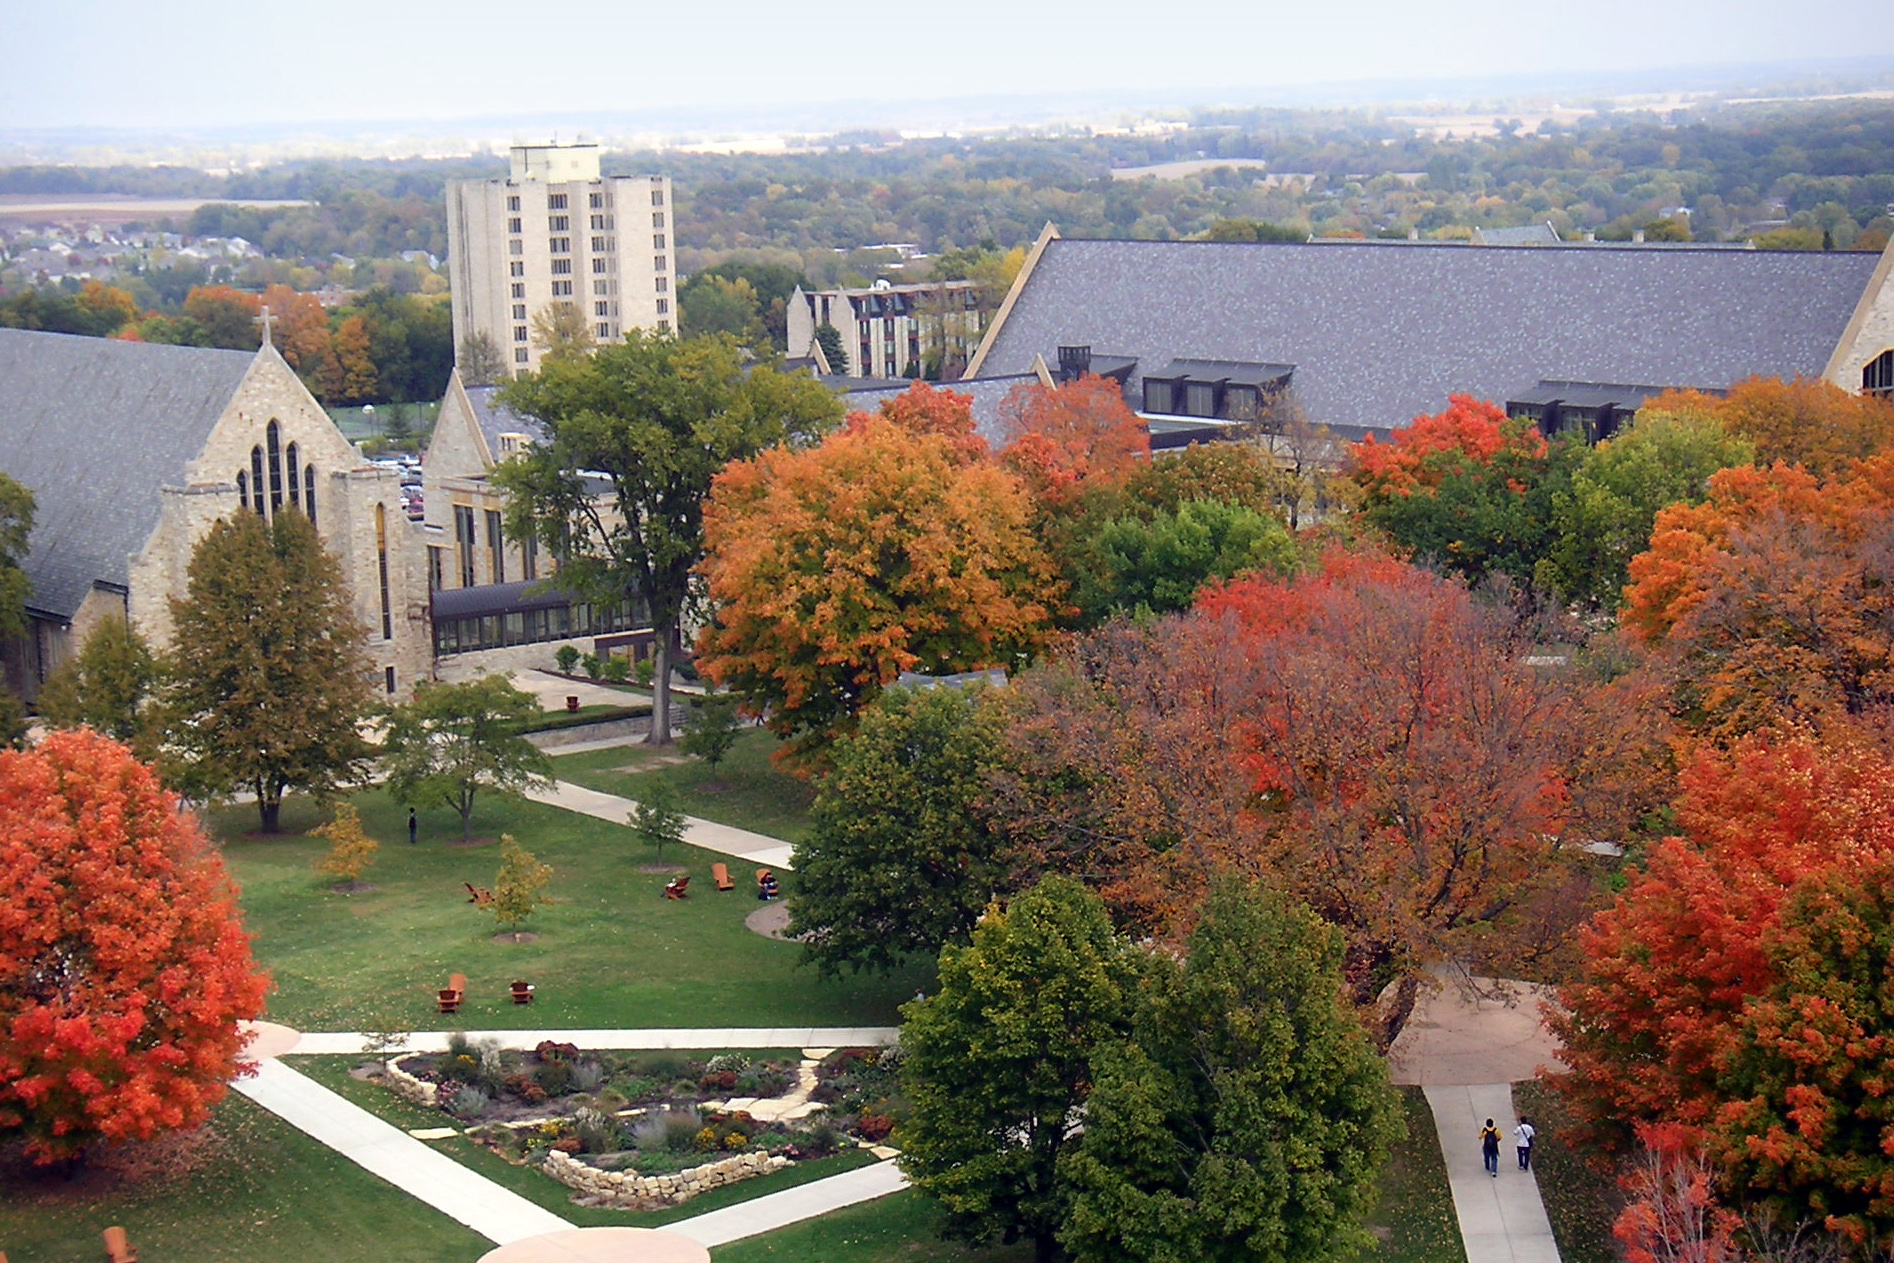 Campus of St. Olaf College, at Northfield, Minnesota, United States. (Credit: Daniel Edwins)